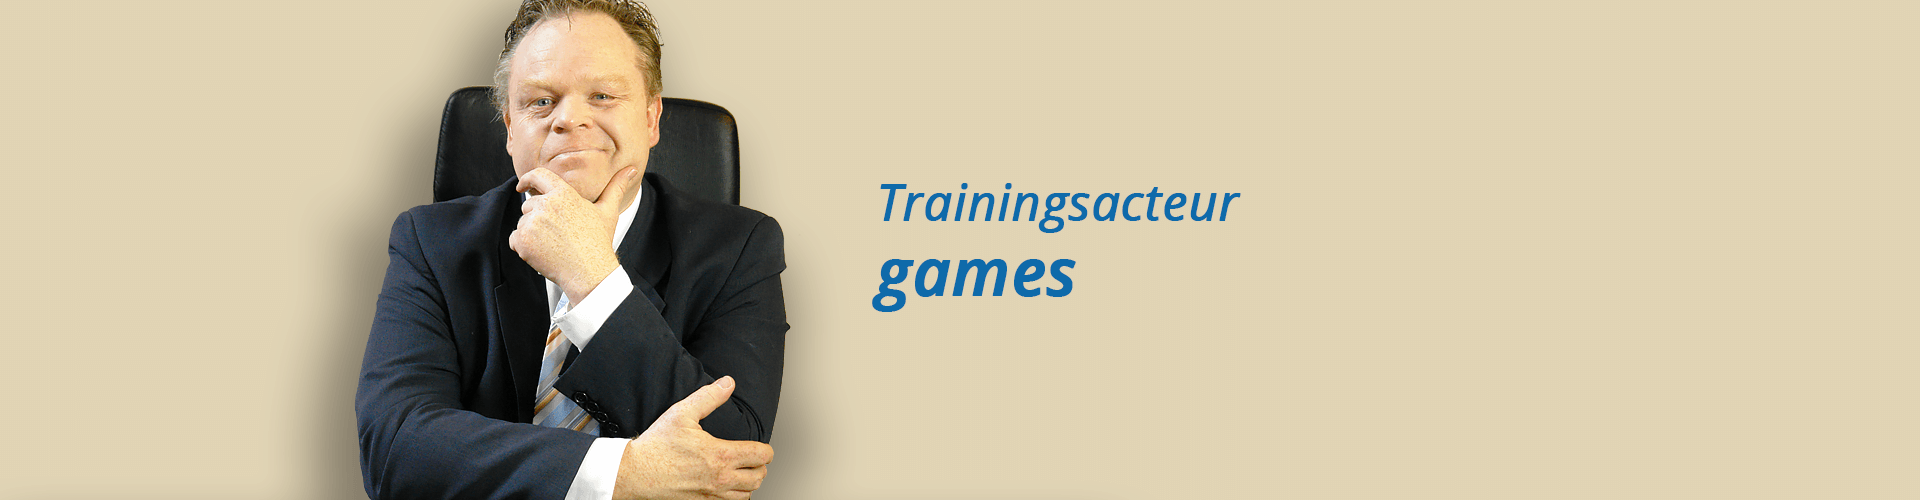 Trainingsacteur games